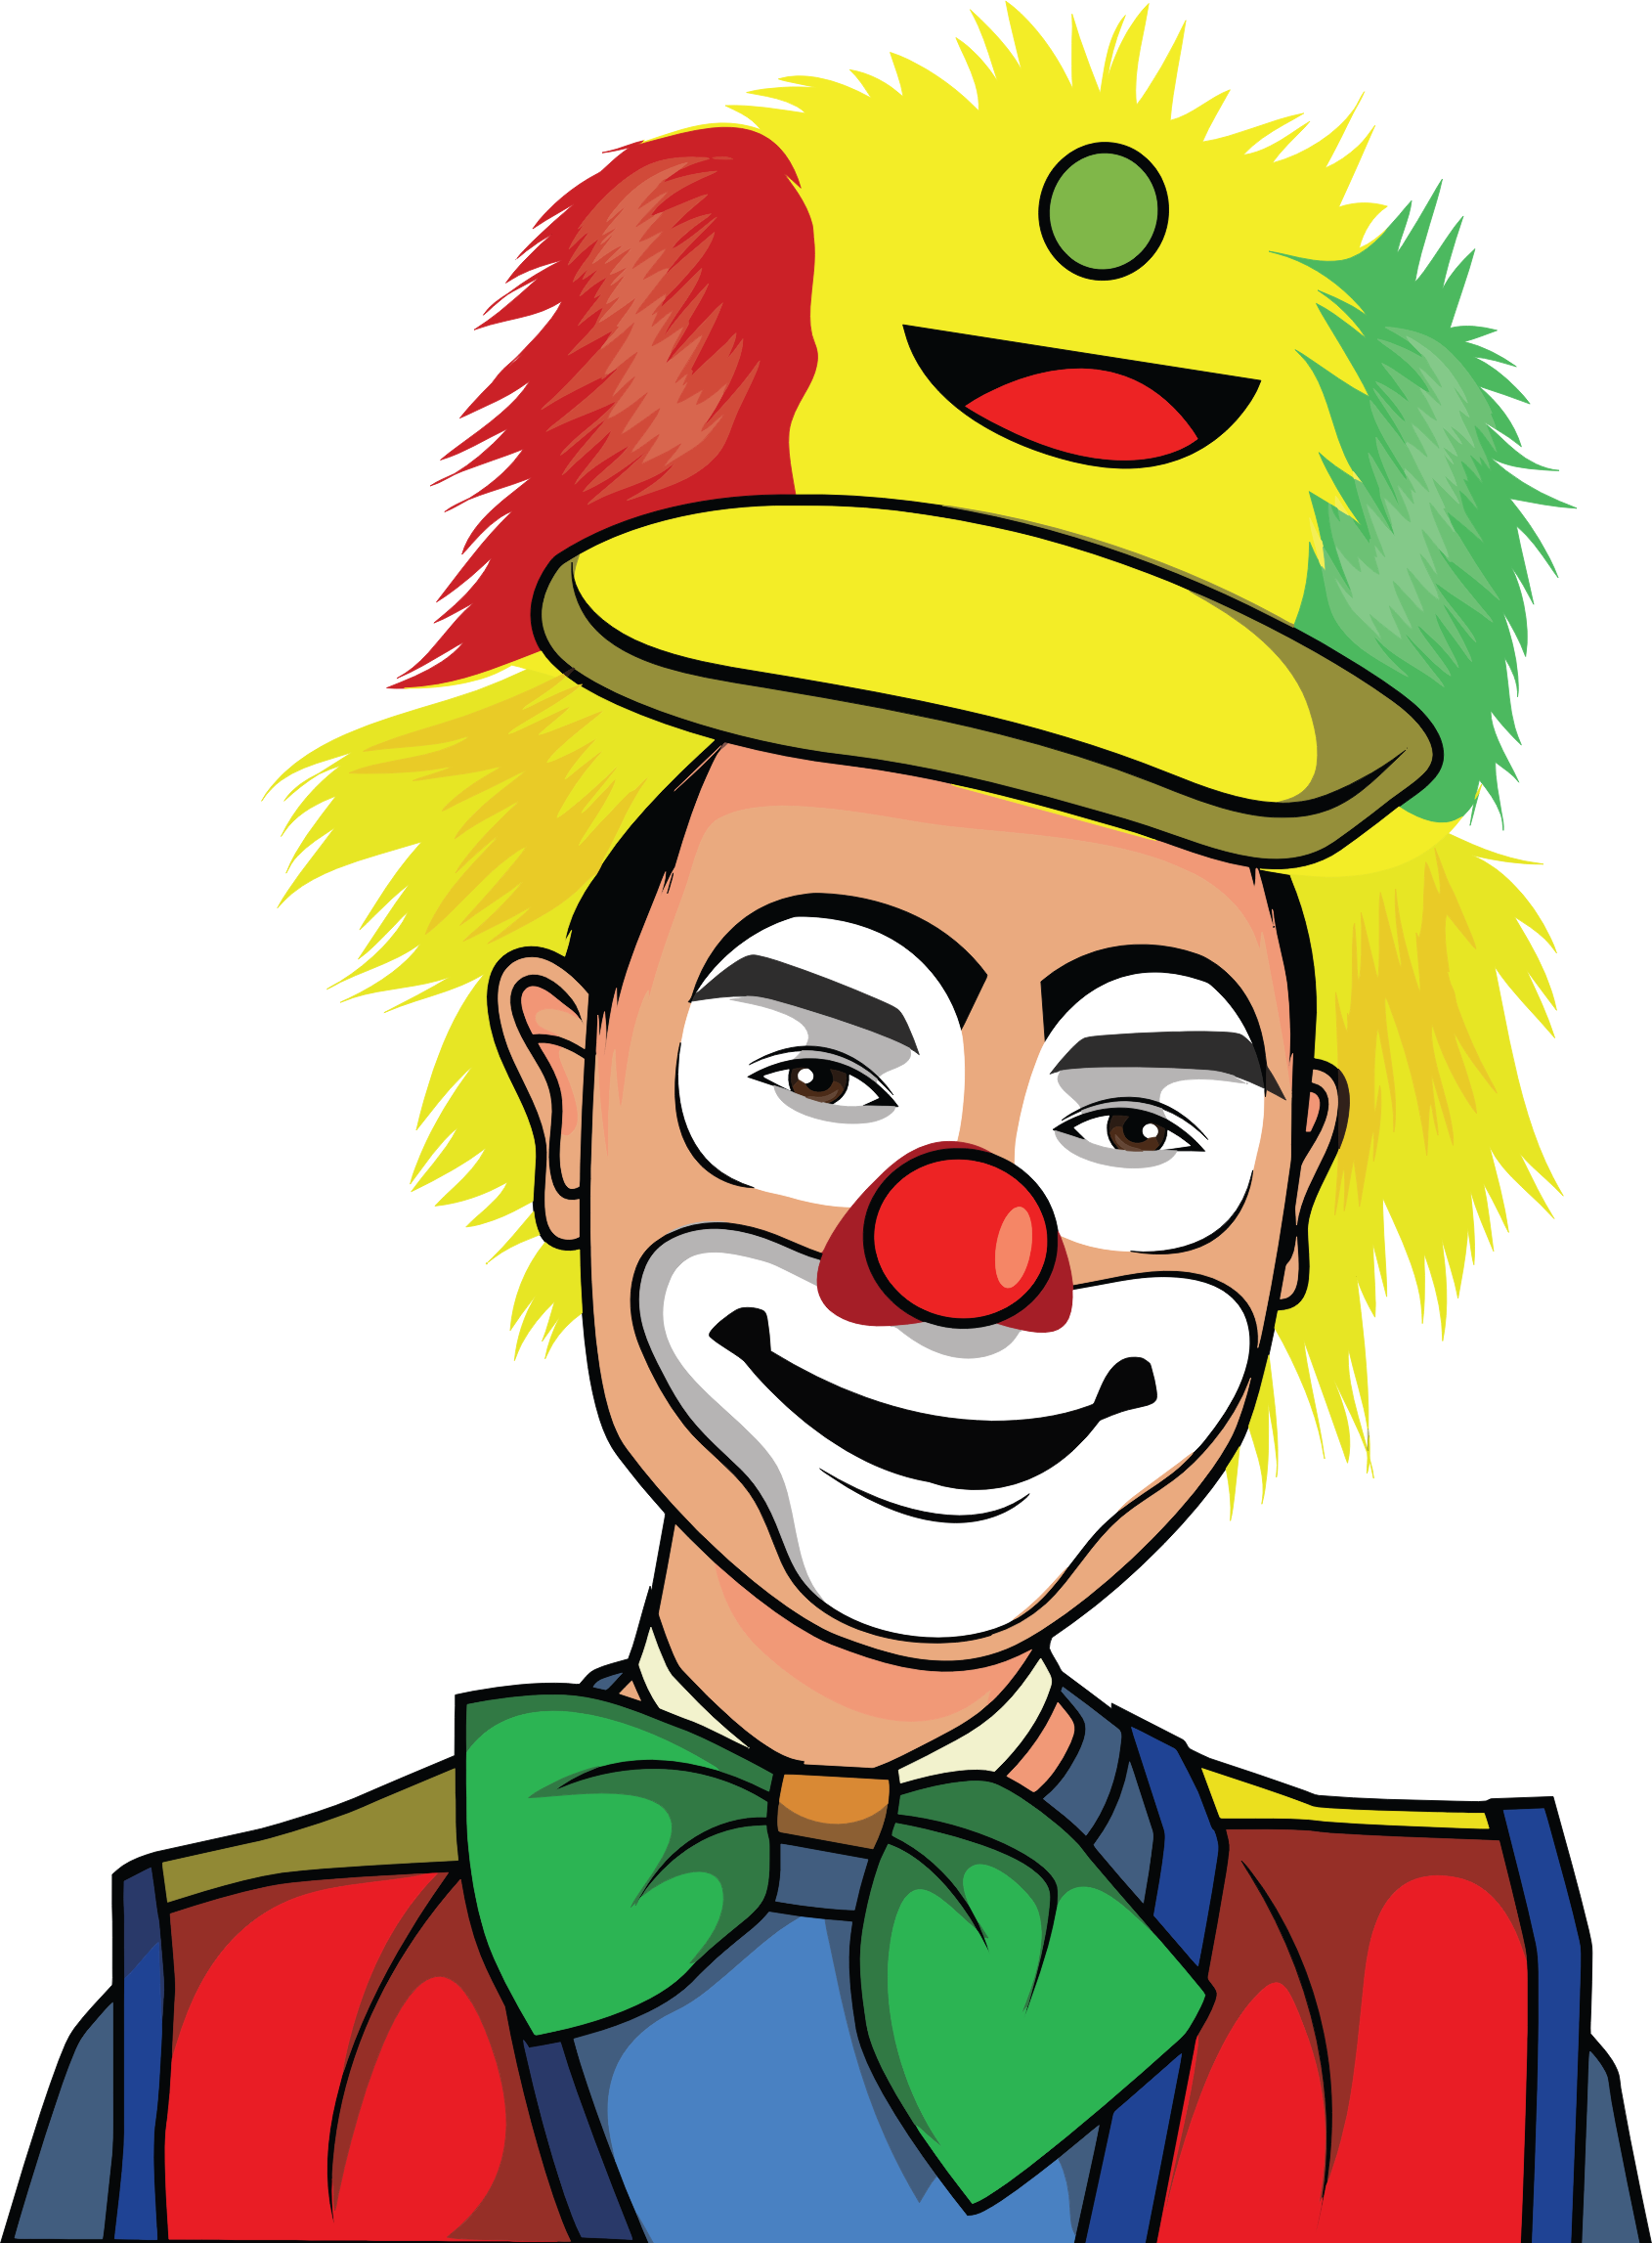 Happy clown png. Clipart illustration big image